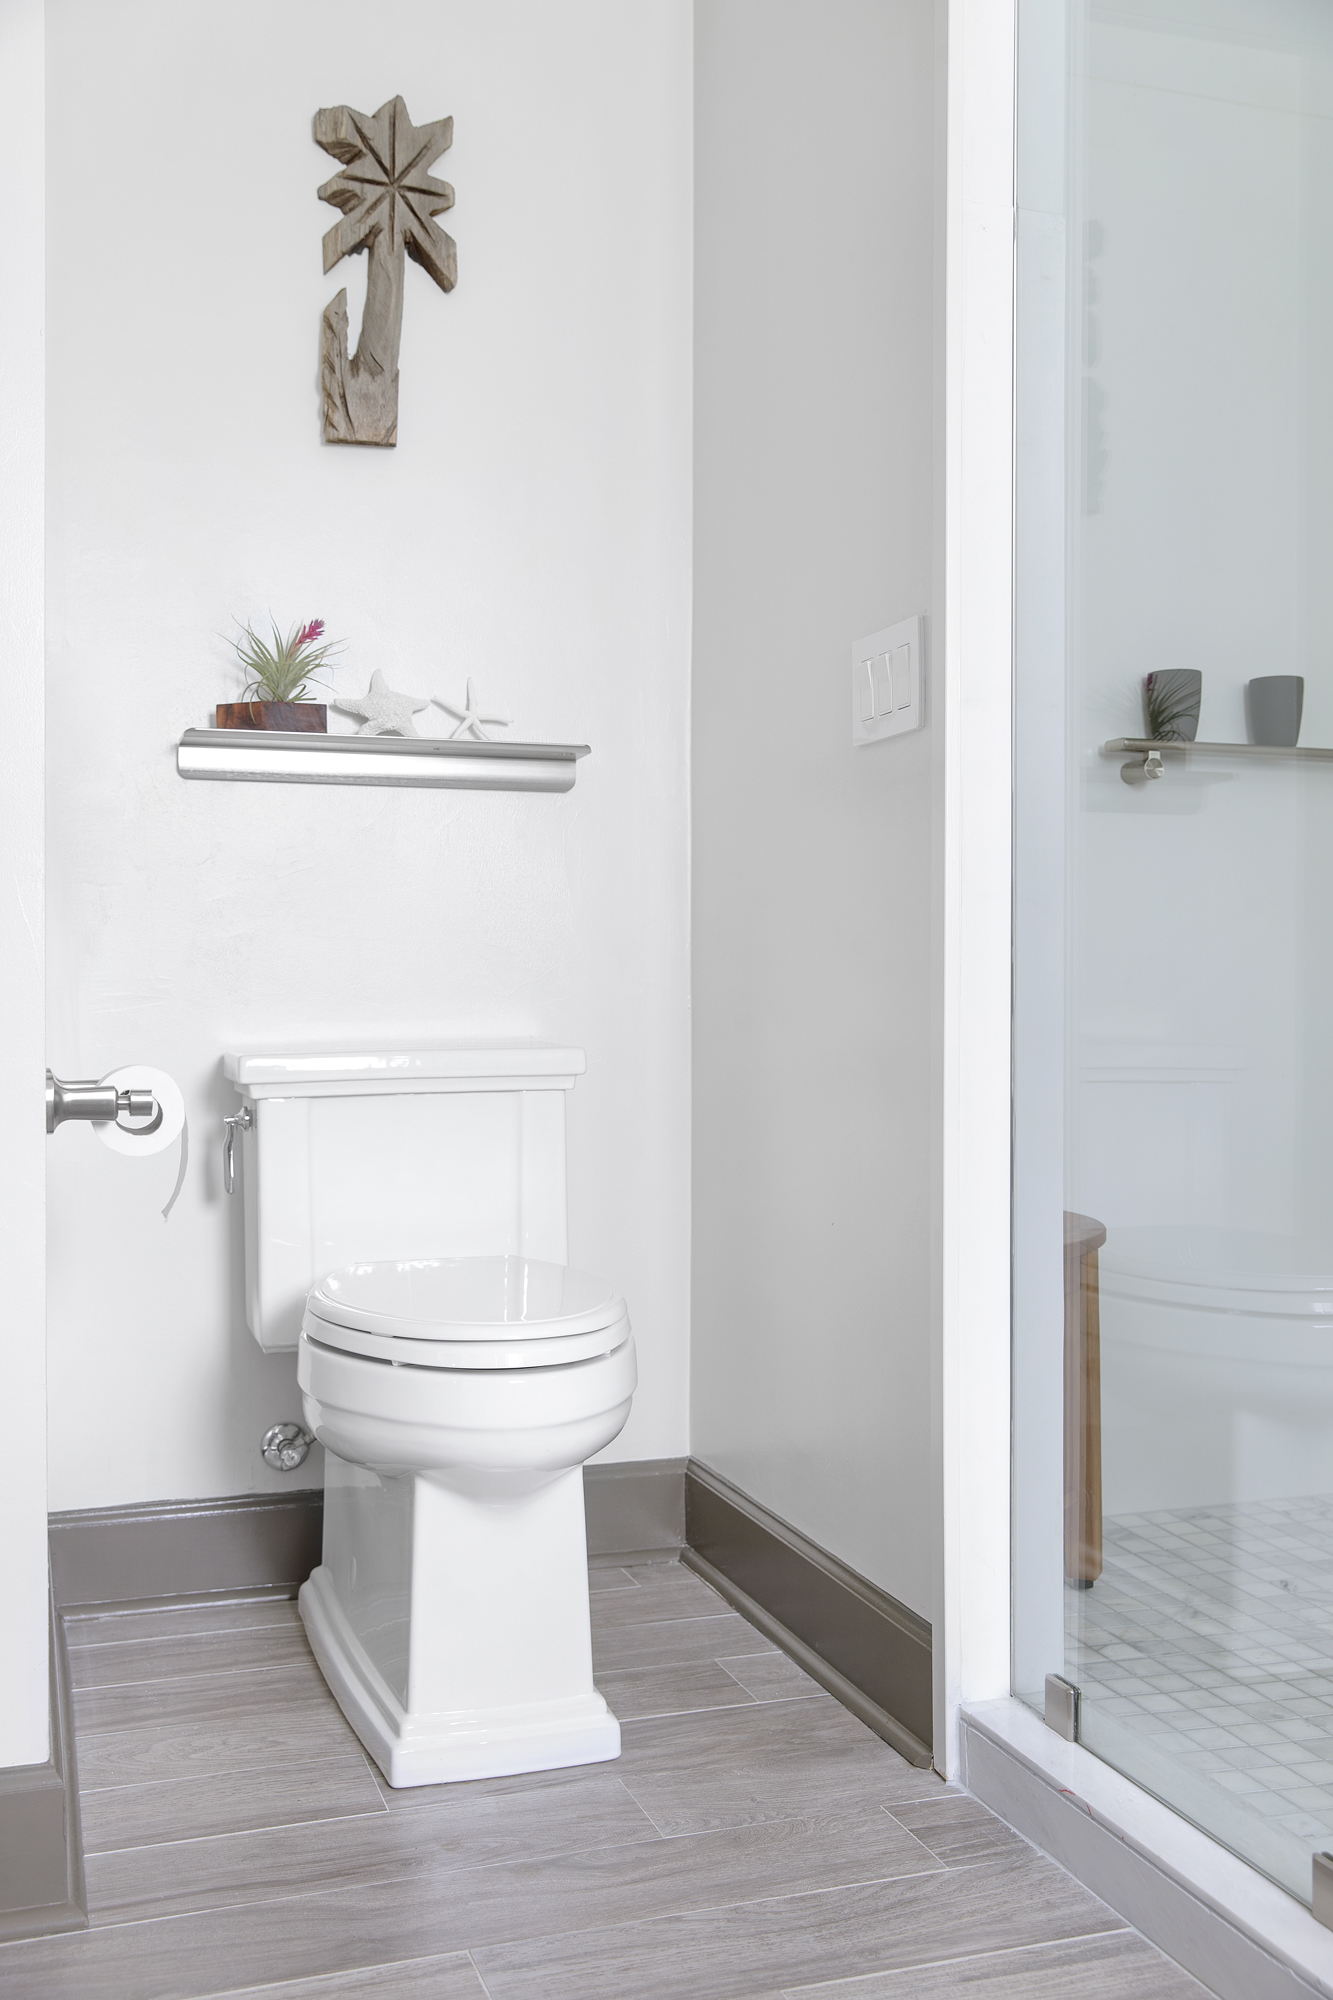 Tresham® toilet   Choreograph® floating shelf     A private nook for the toilet comes to life with a simple shelf and decor that reflects the home's oceanside location.